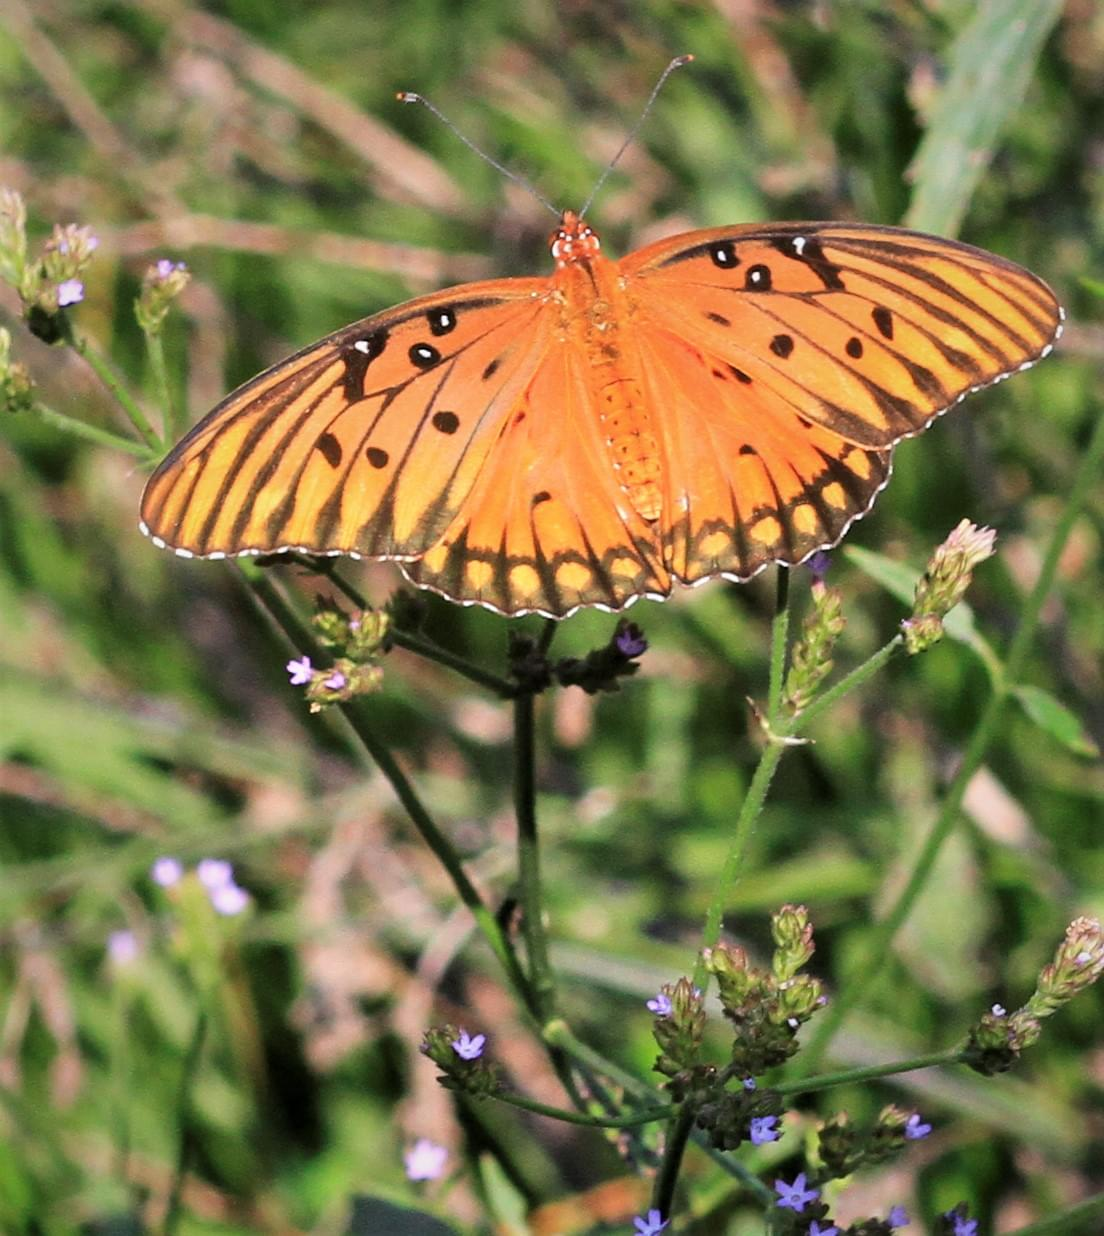 PIC OF THE DAY: Resting Butterfly